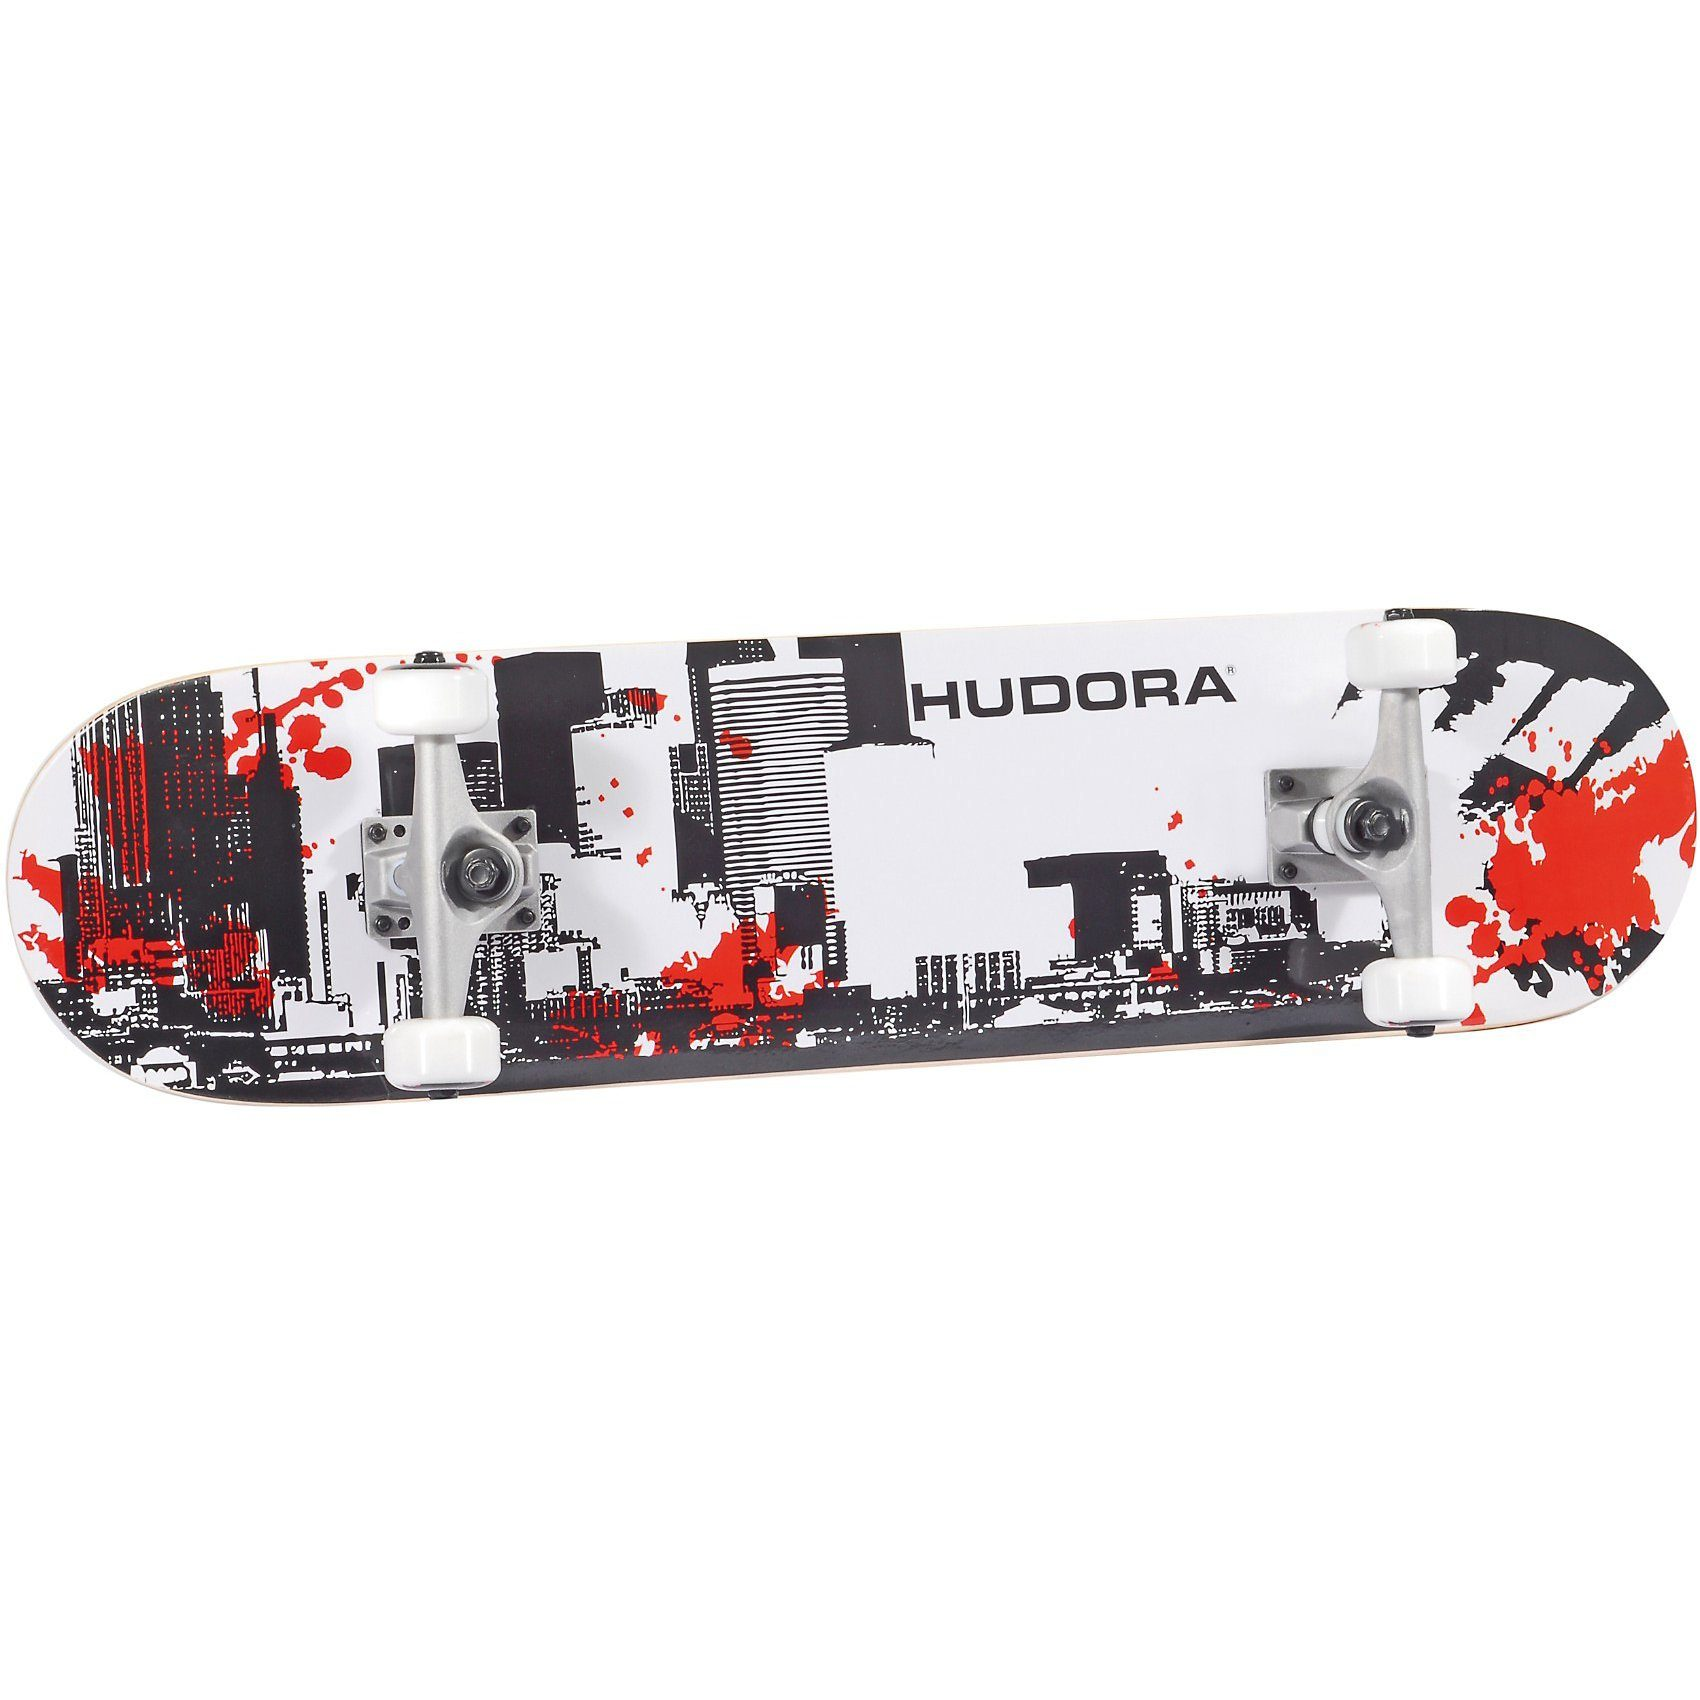 Hudora Skateboard City, ABEC 5